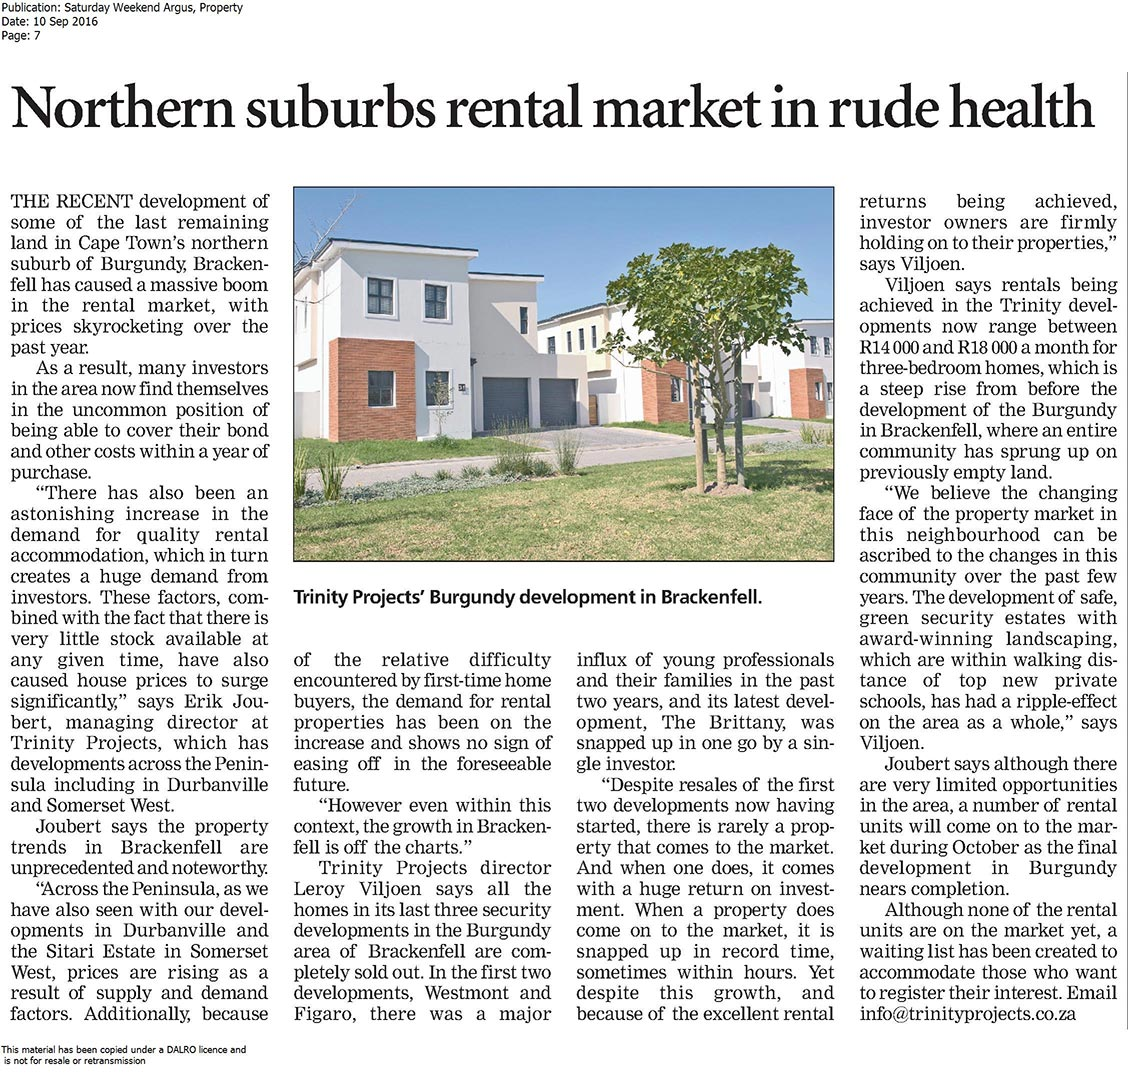 saturday-weekend-argus-property-p-7-10-sep-2016